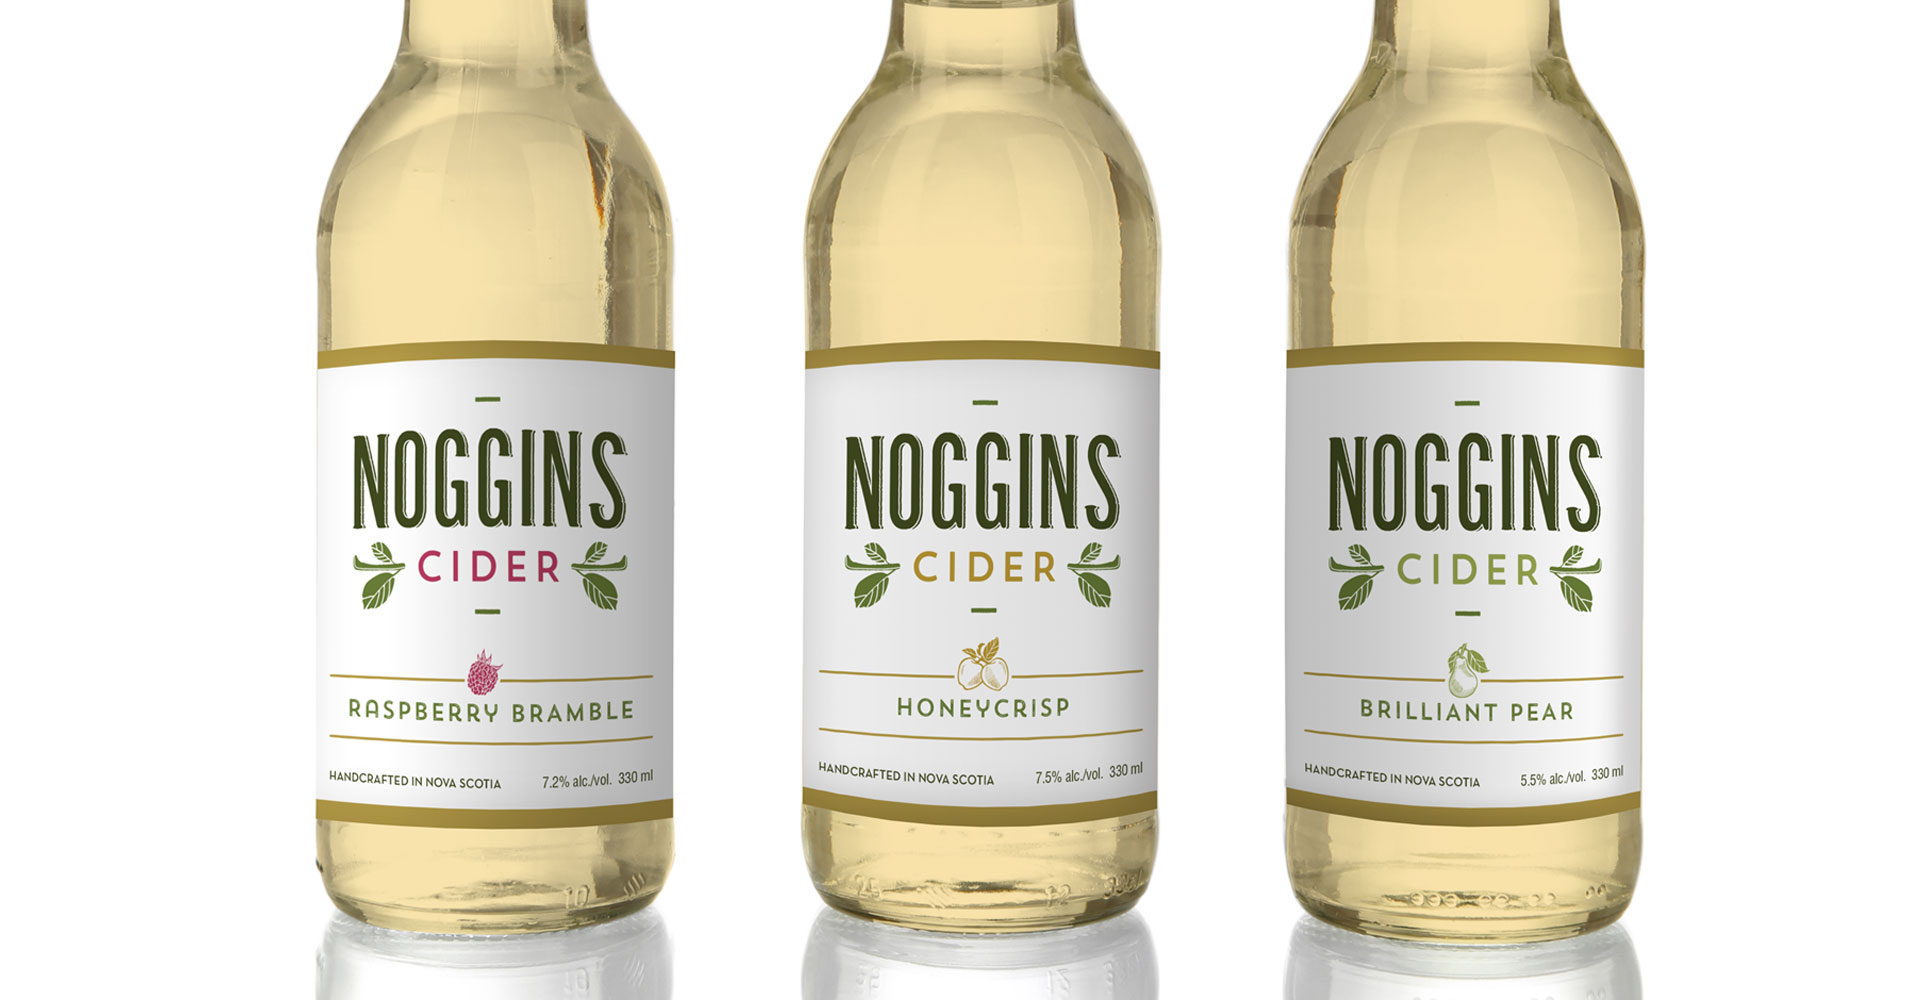 Noggins Cider bottle design